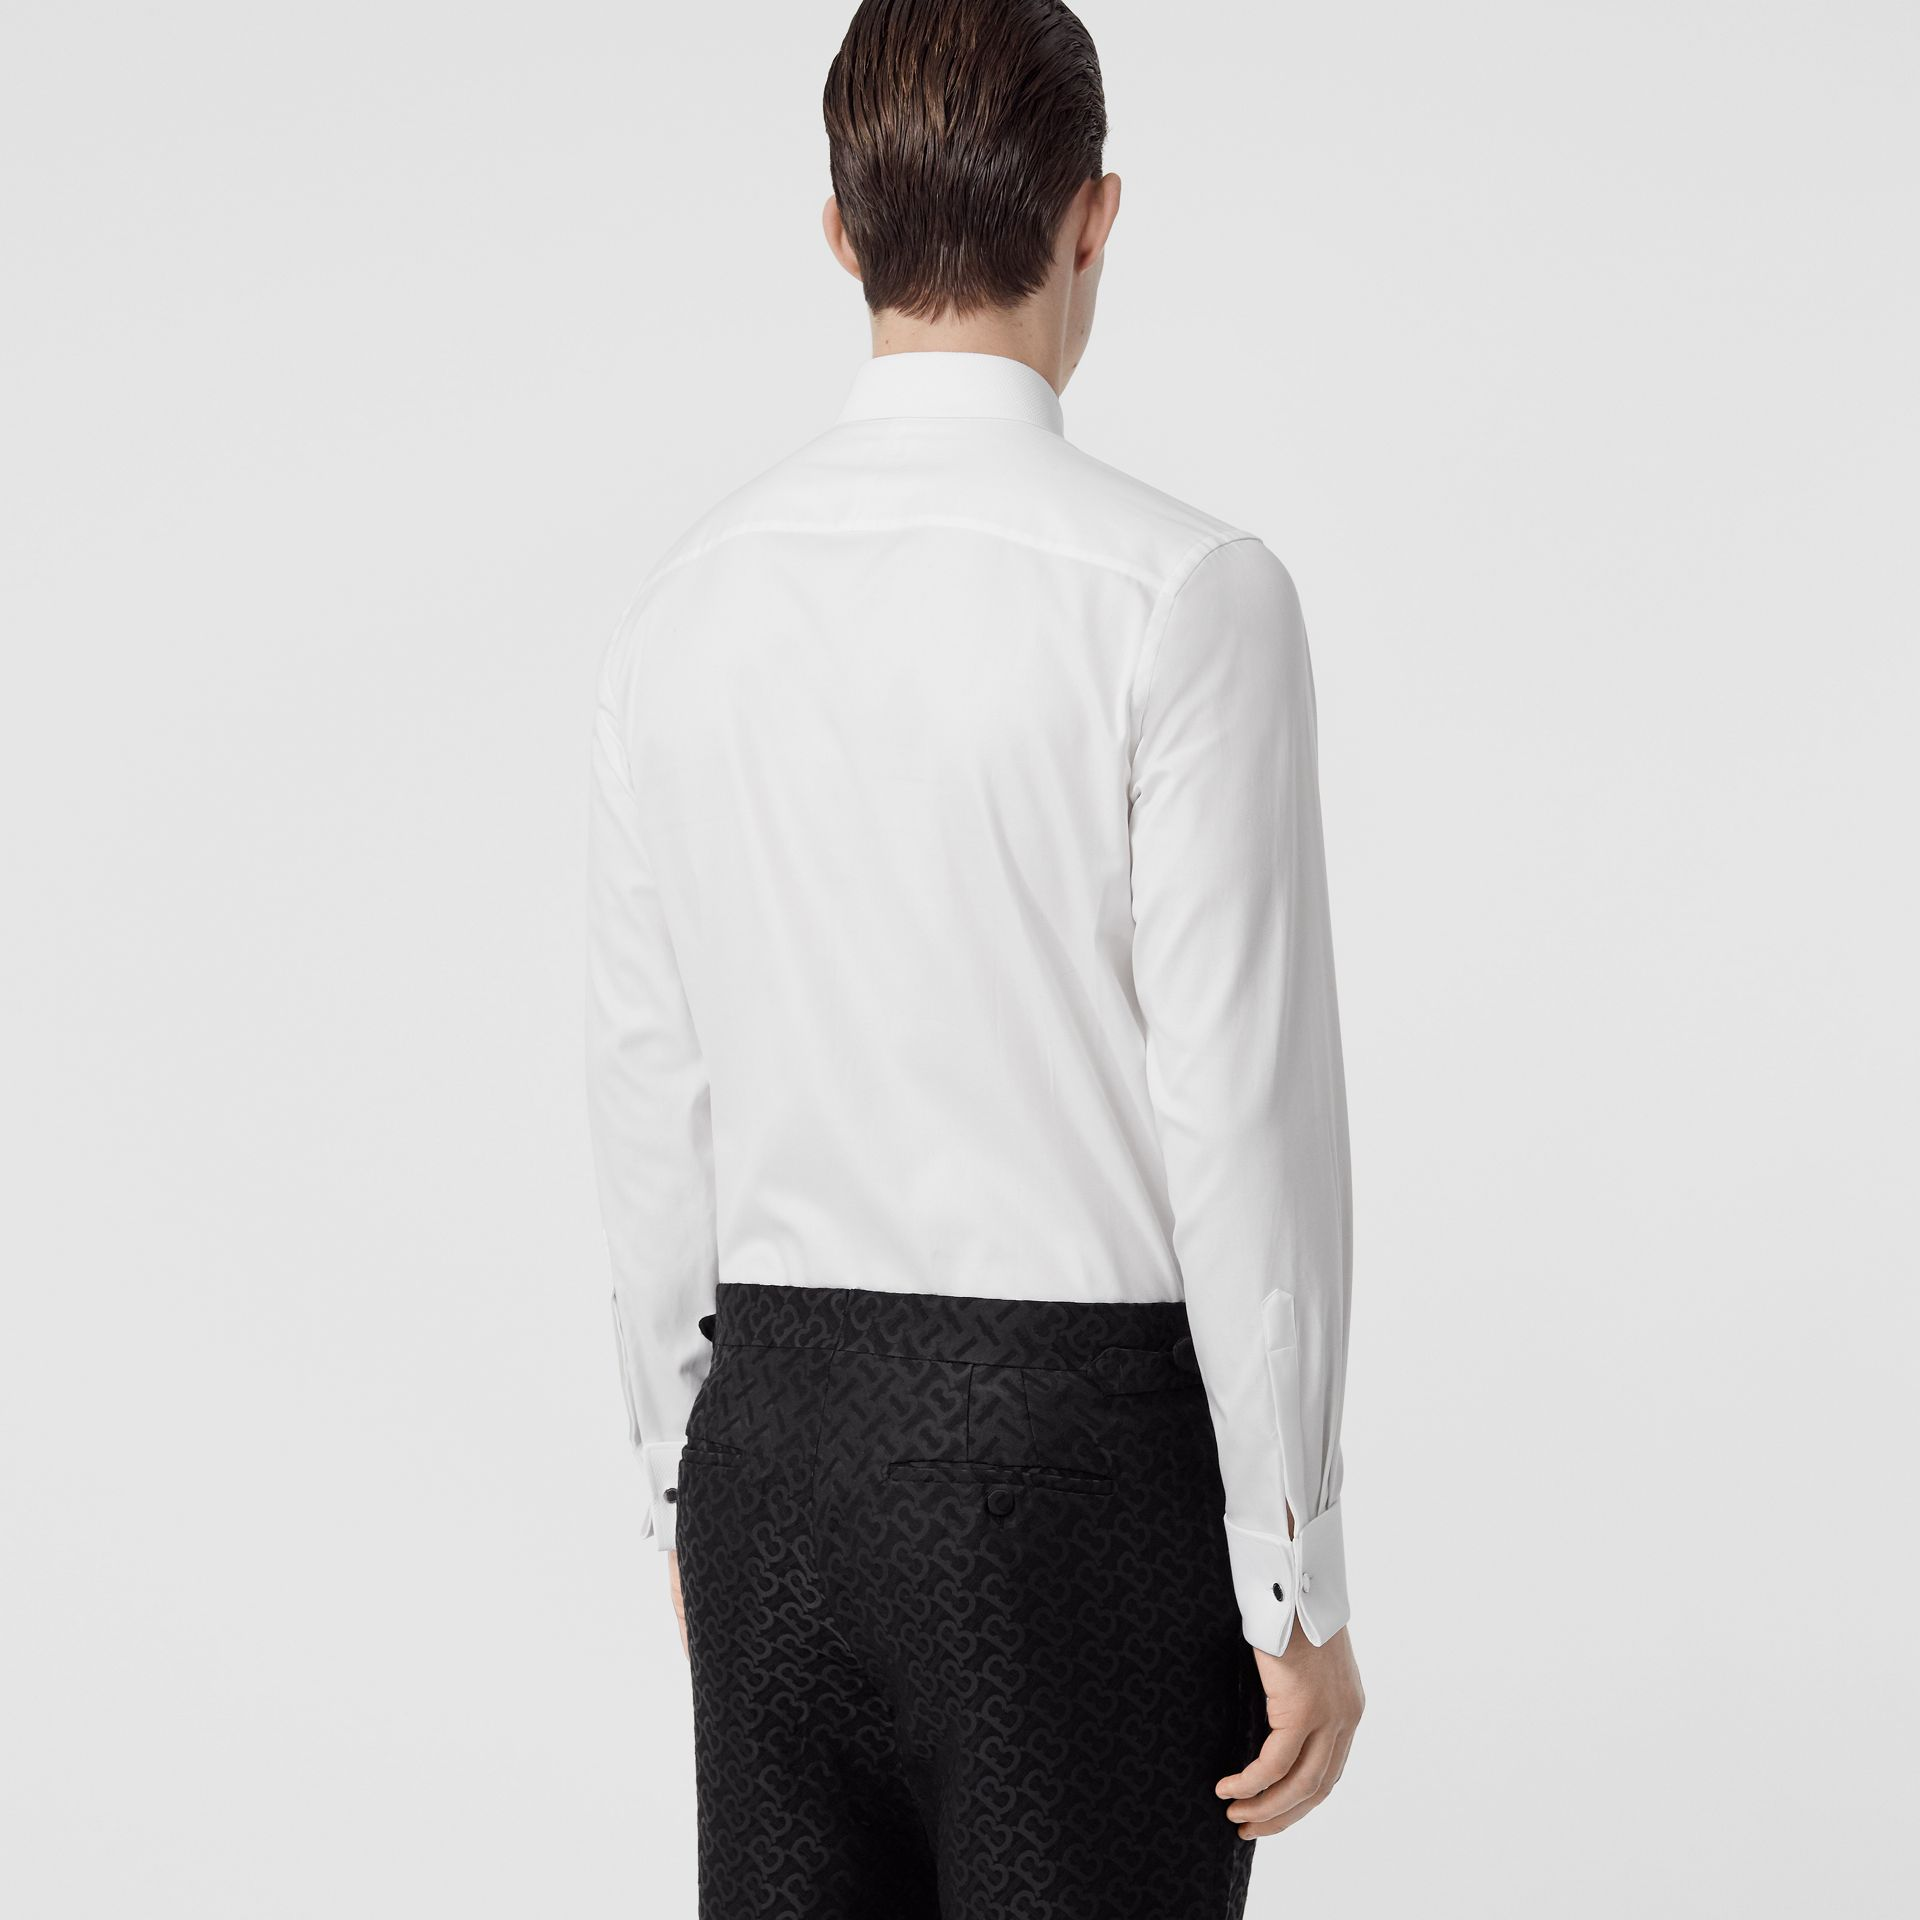 Panelled Bib Cotton Oxford Dress Shirt in White - Men | Burberry Hong Kong S.A.R - gallery image 2